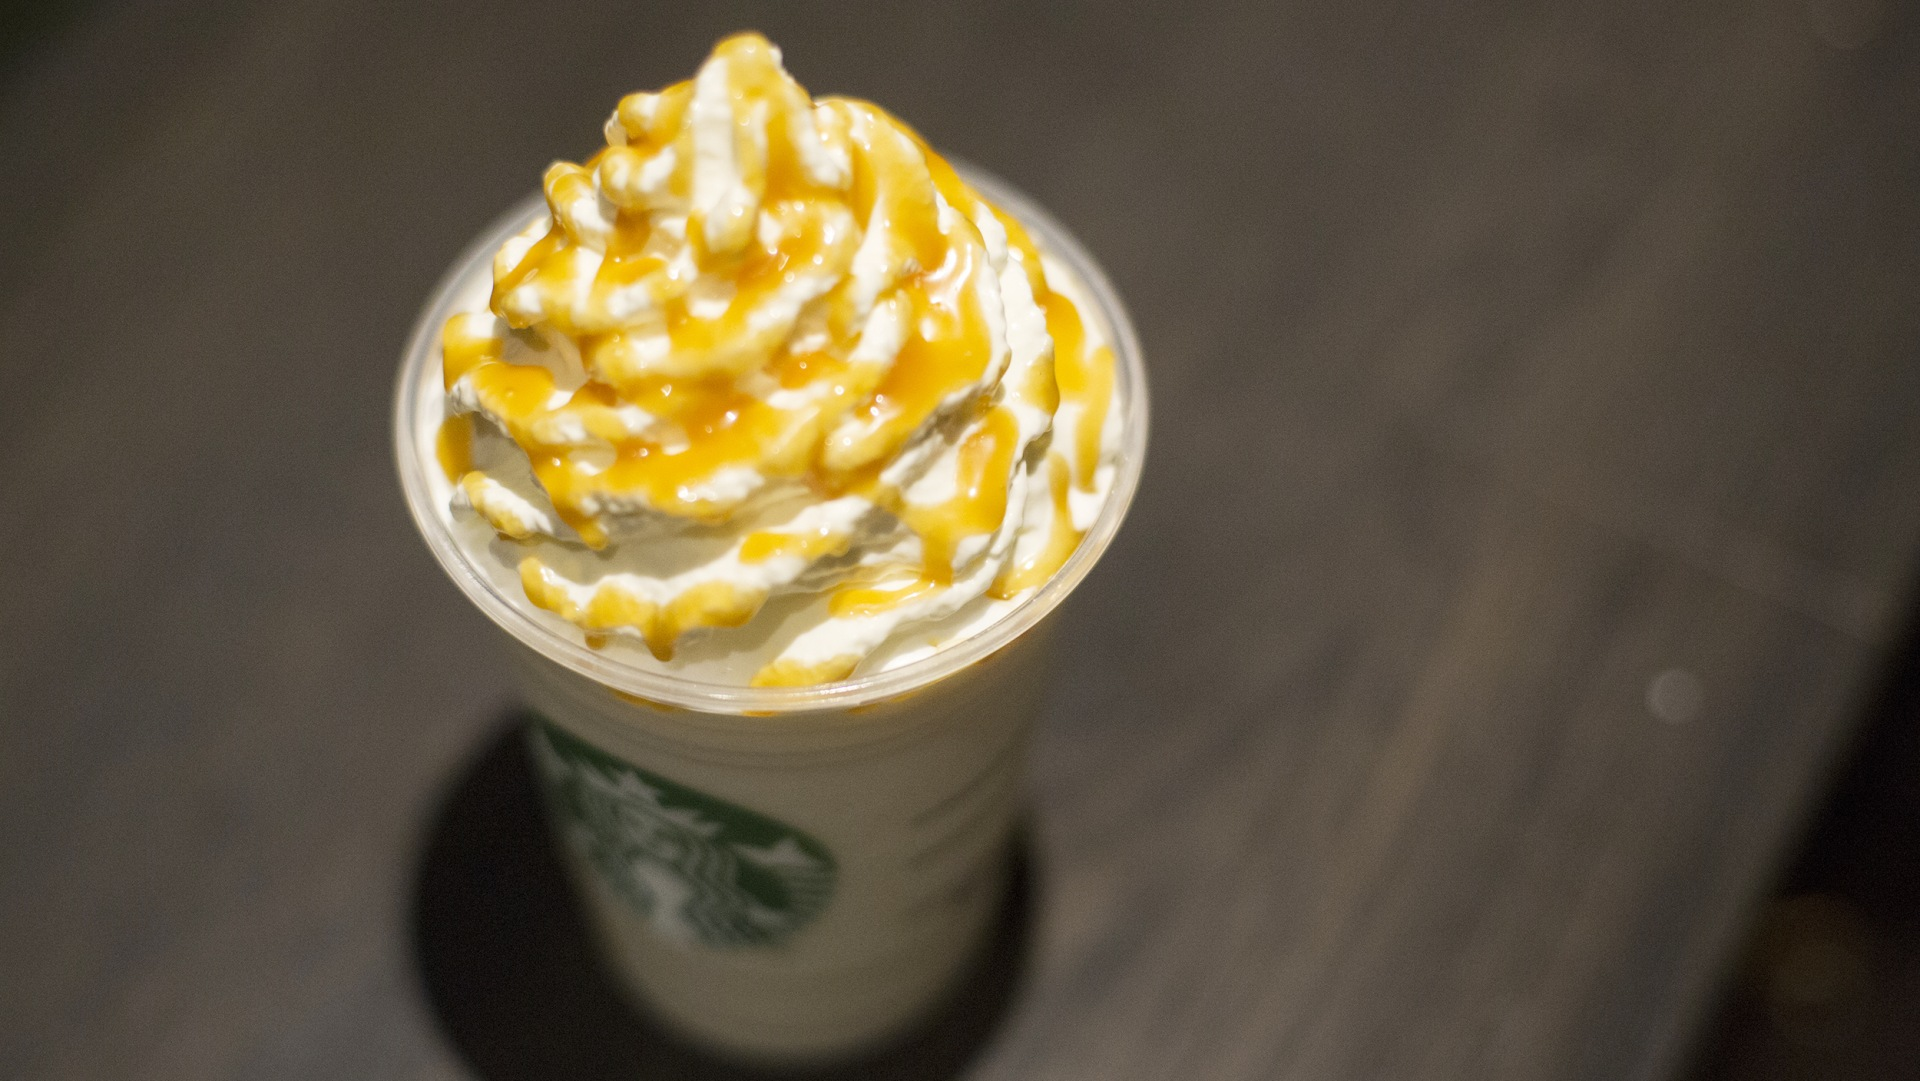 Pictures Of Drinks At Starbucks